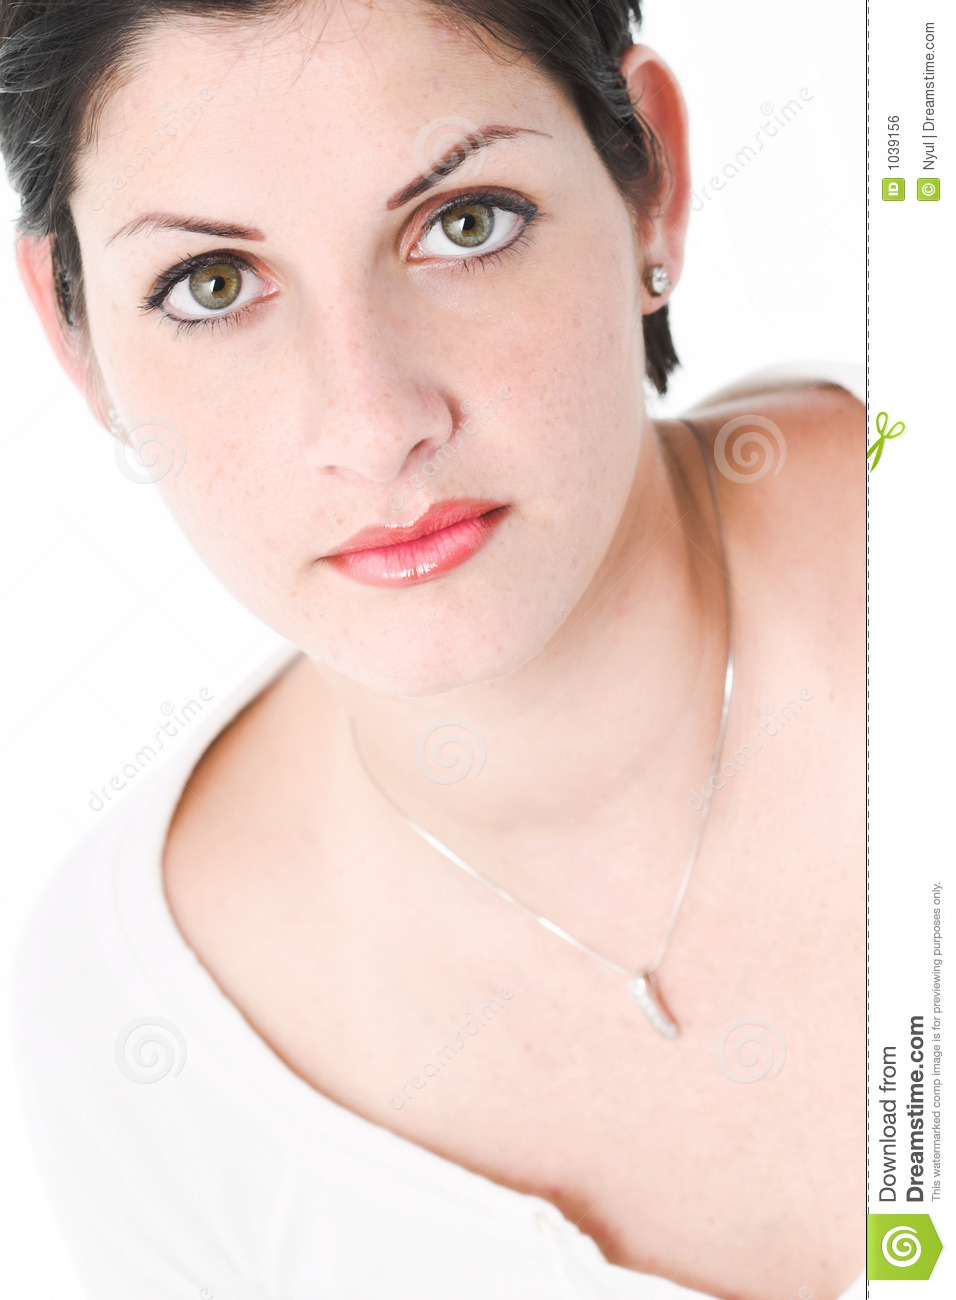 Grands yeux verts